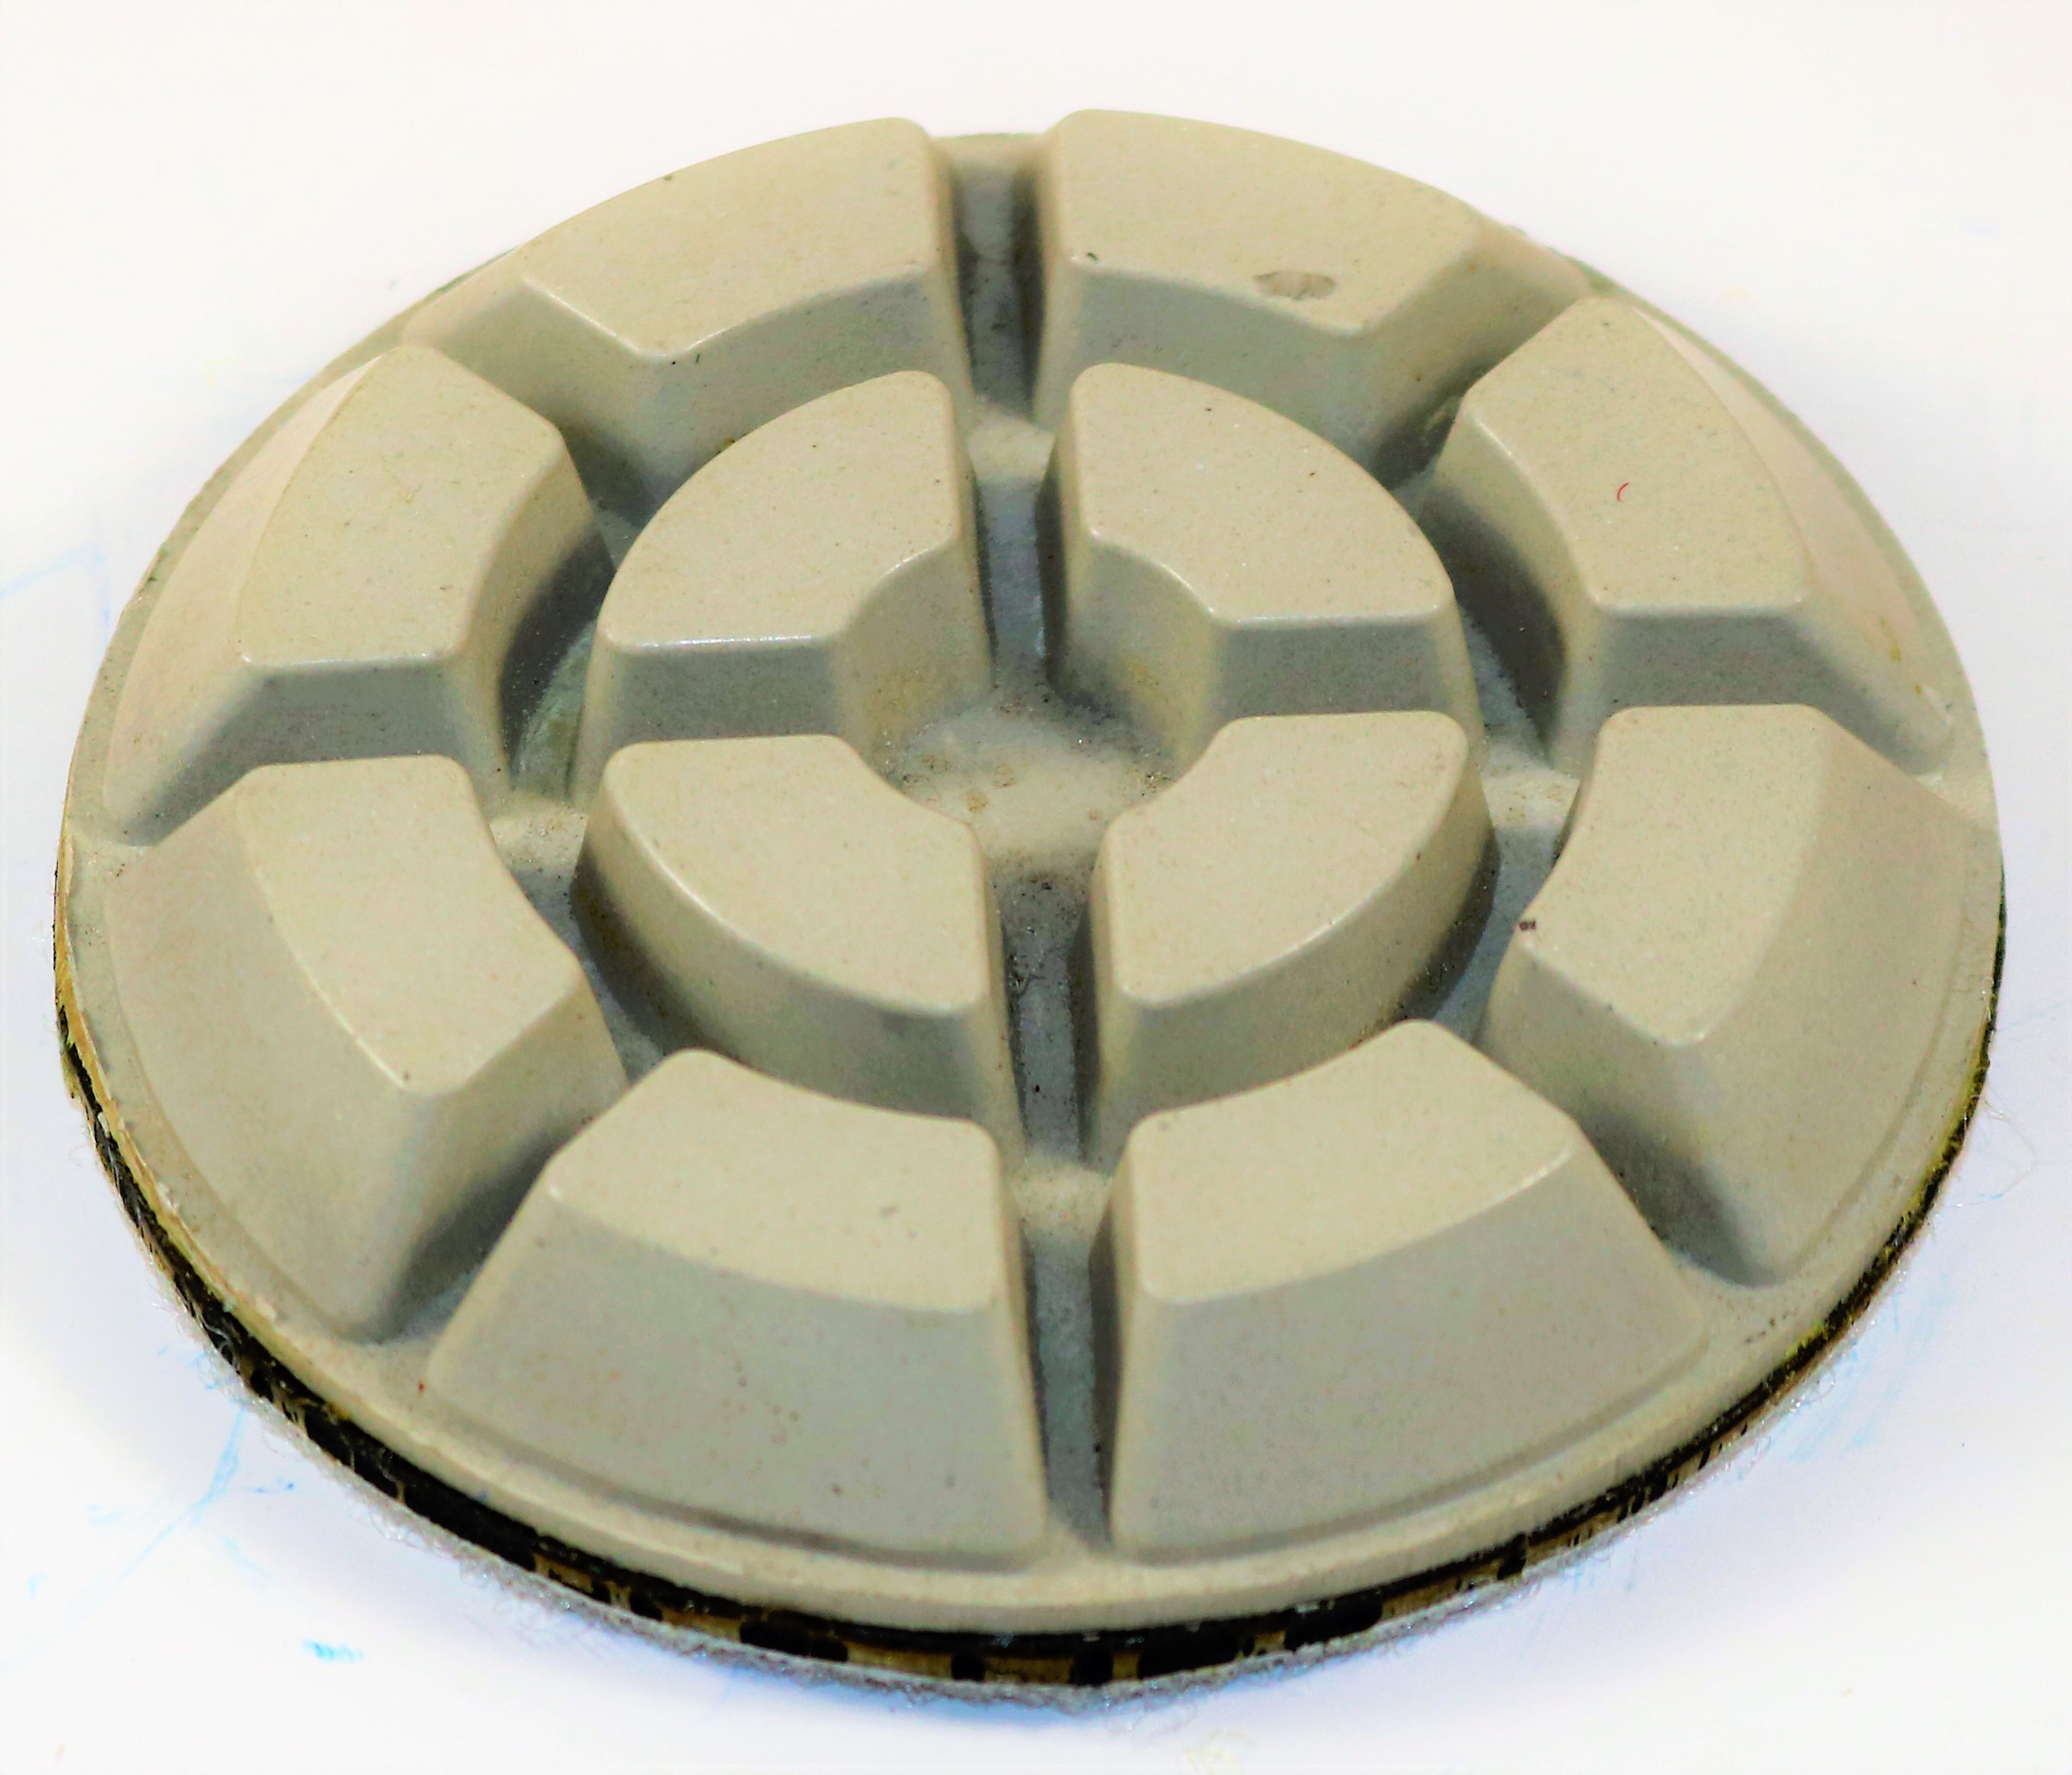 Aztec Products Concrete Grinding and Polishing Diamond Pucks